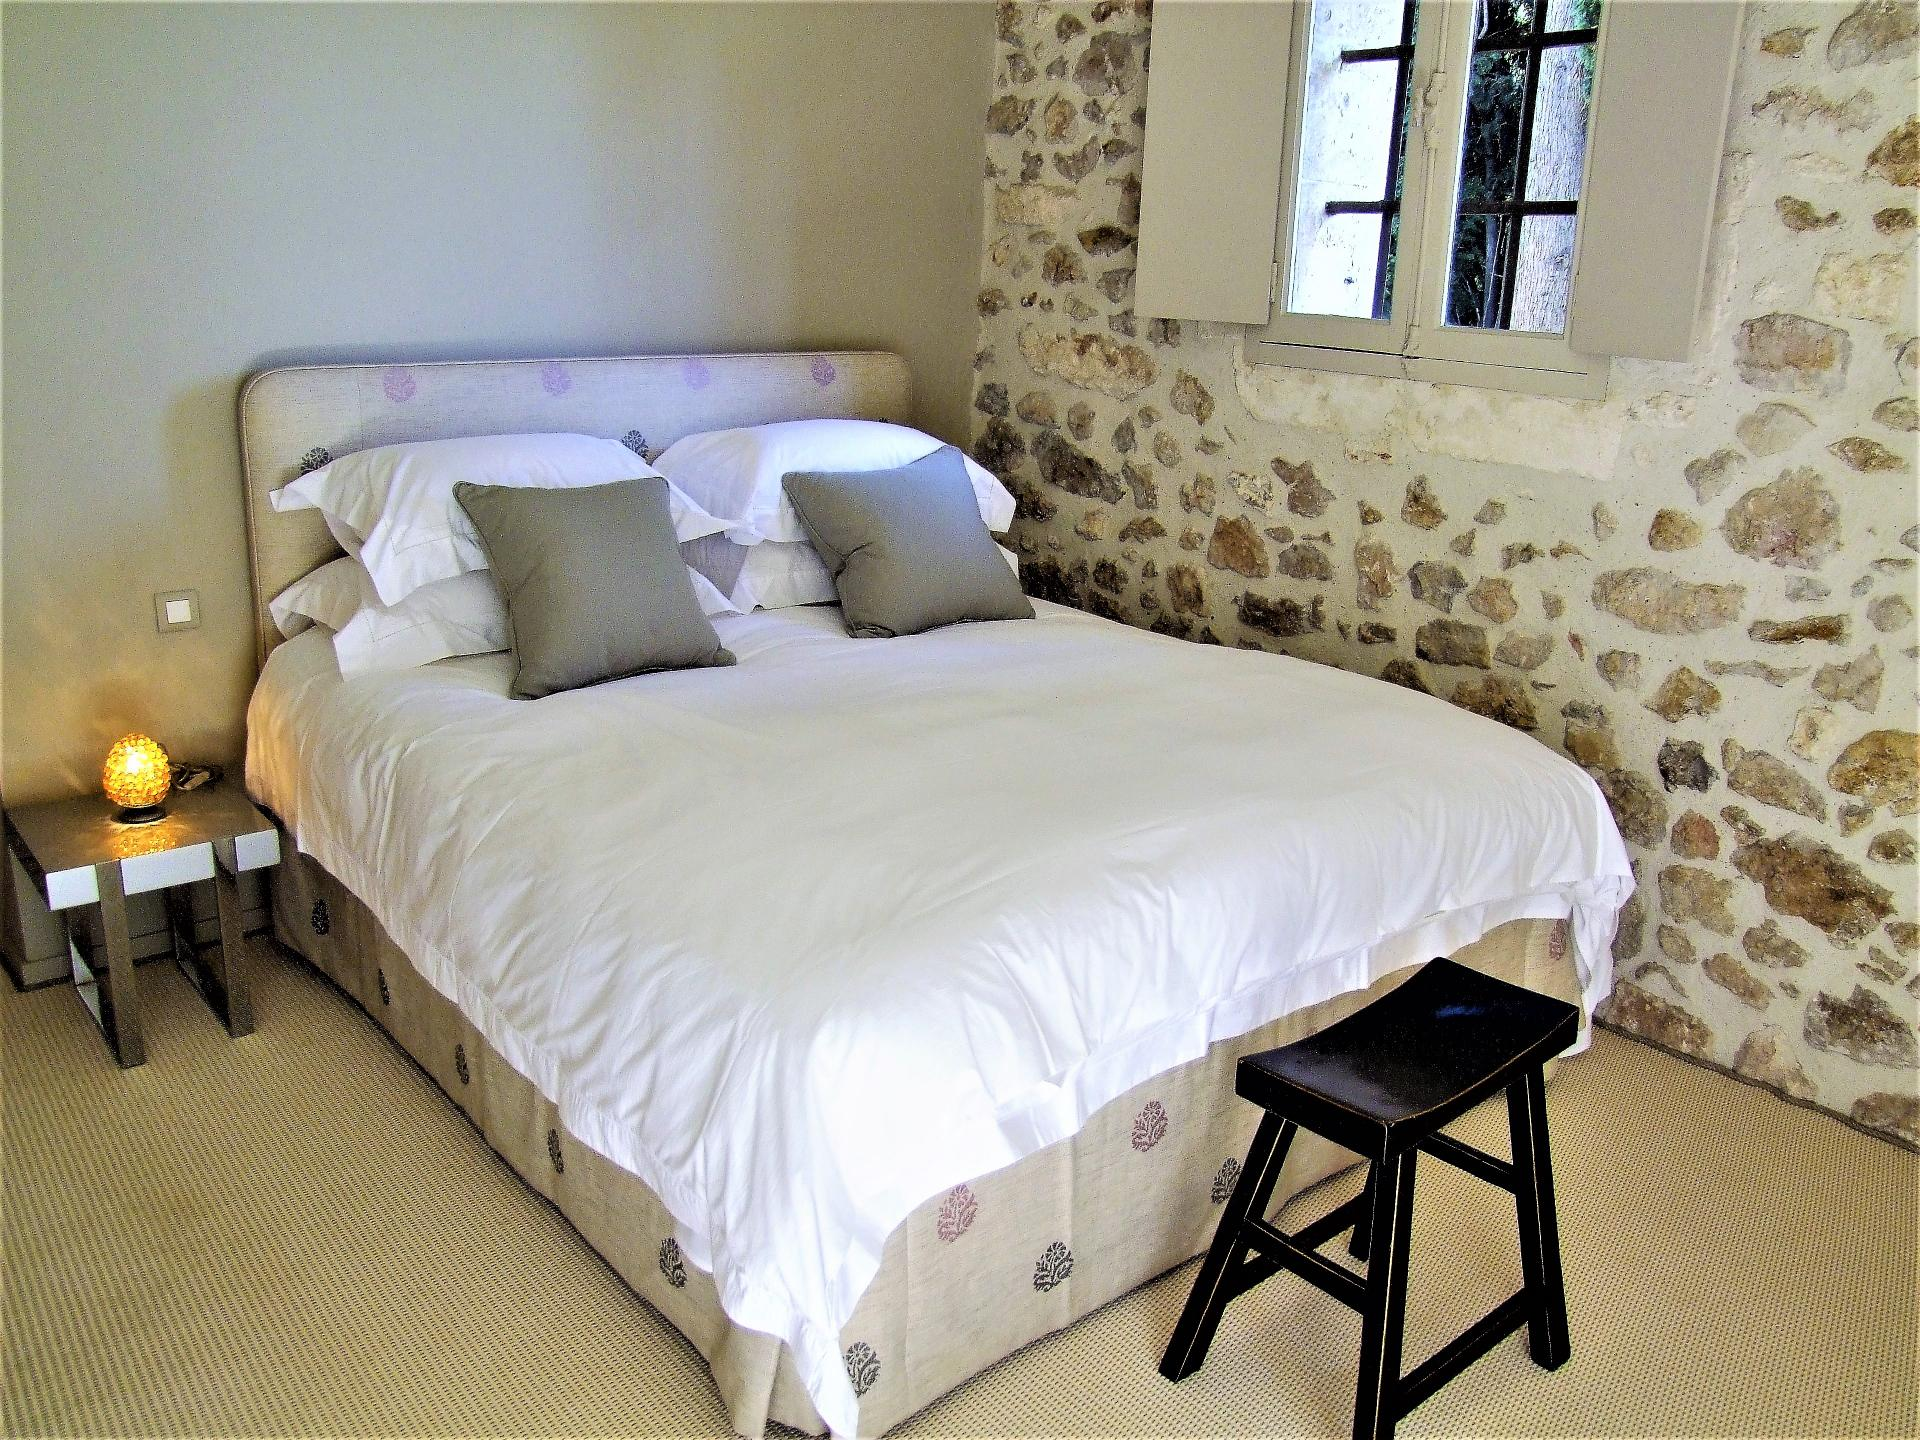 ONE OF THE BEDROOMS IN LA DEMEURE DES SEIGNEURS VILLA